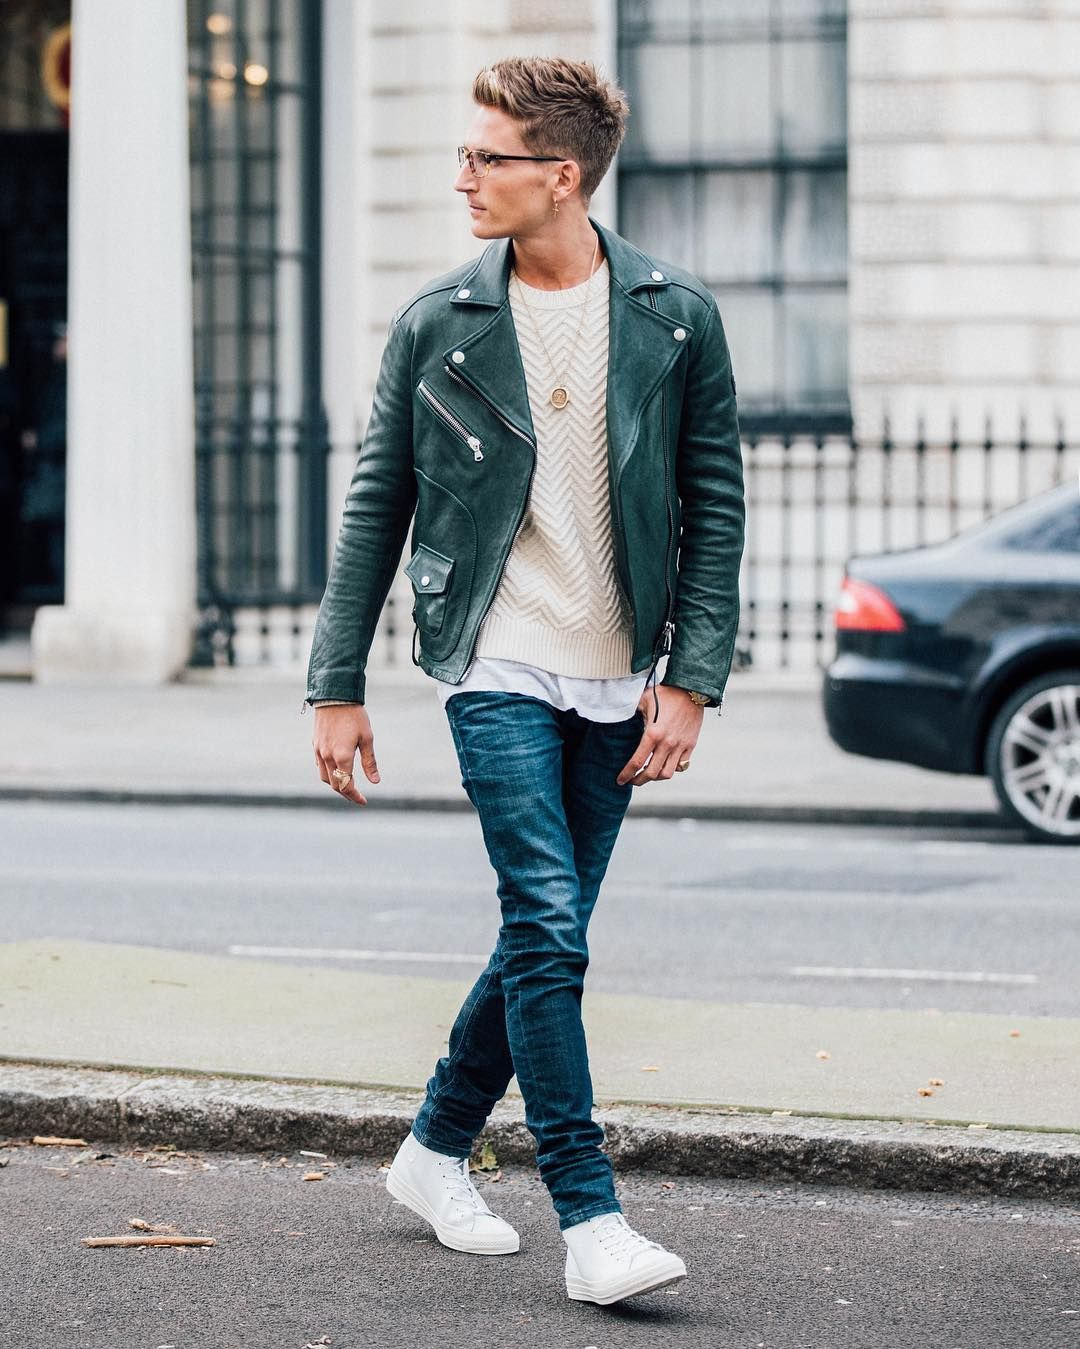 Street style from Mens Fashion Week. Wearing converse ...